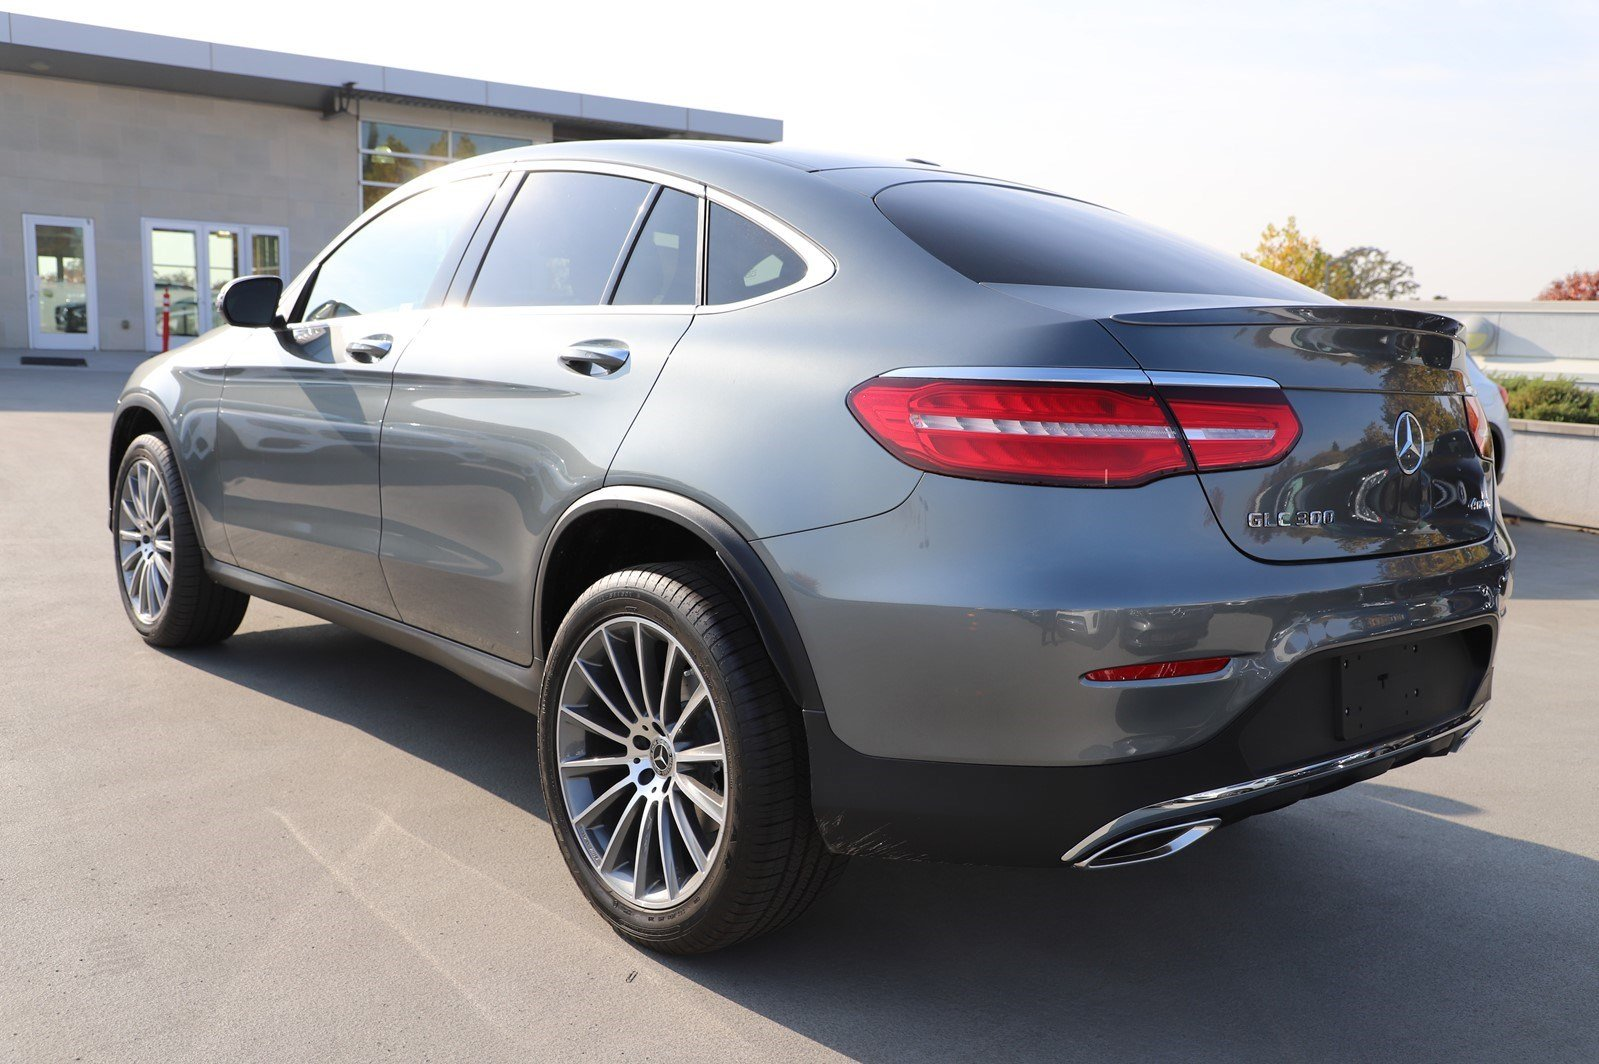 Mercedes Benz Of Rocklin >> New 2019 Mercedes-Benz GLC GLC 300 Sport Utility in Rocklin #N13417 | Mercedes-Benz of Rocklin